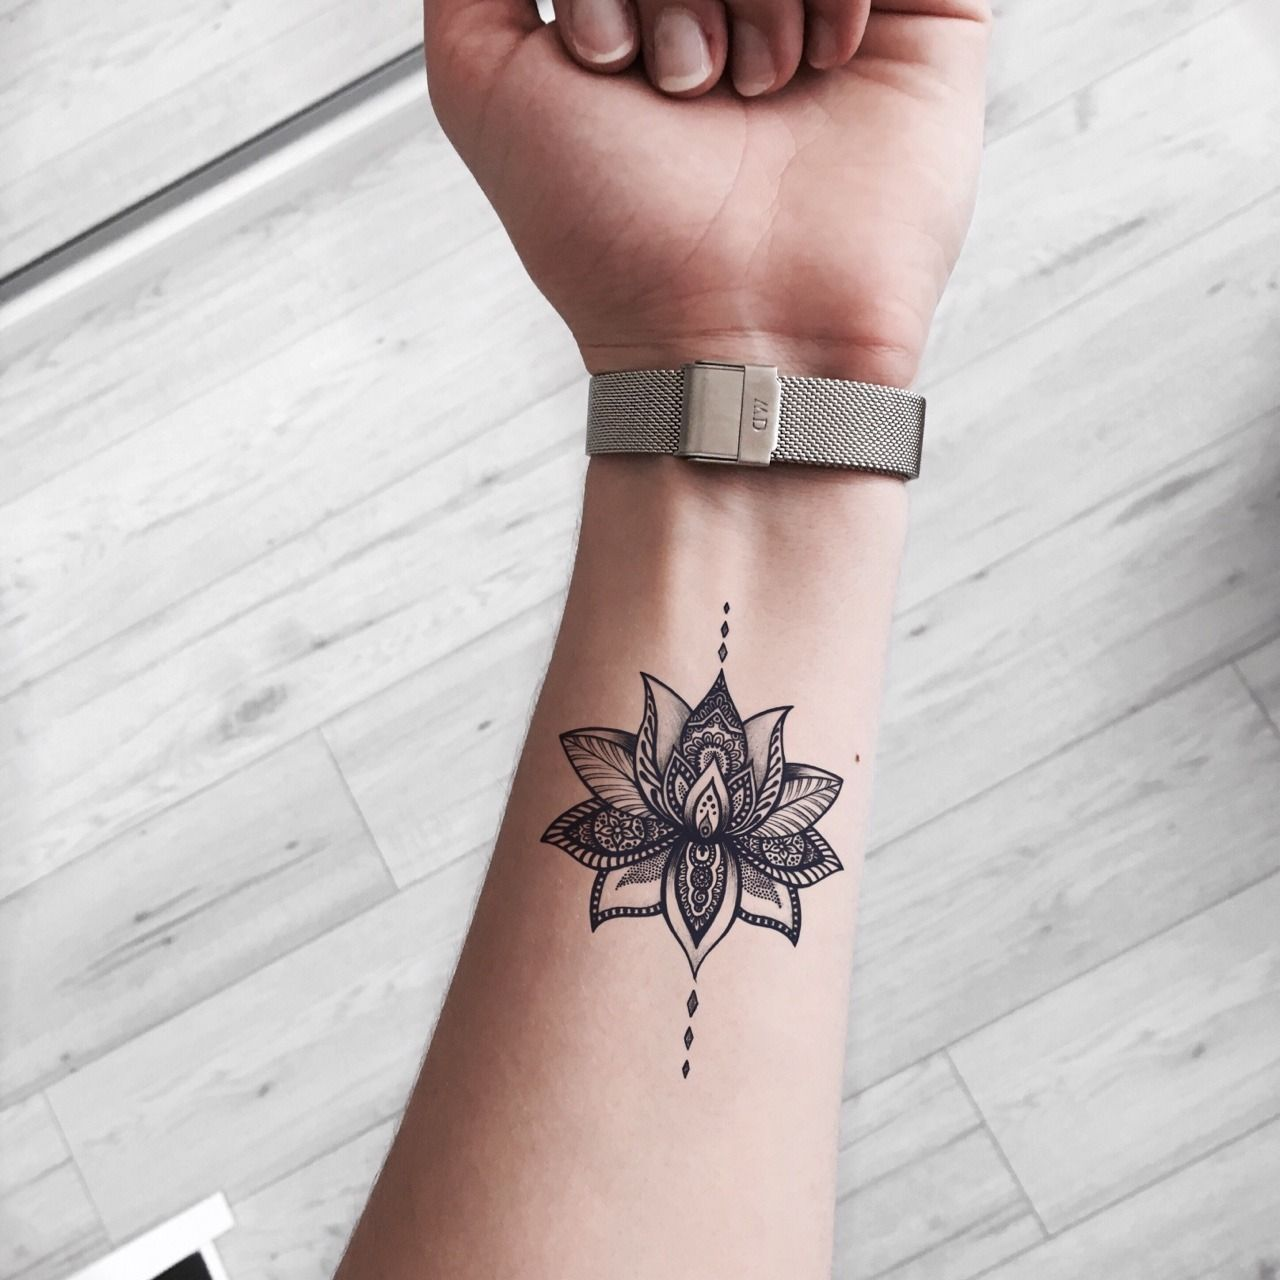 37 Cute And Beautiful Small Tattoo Ideas For Women 99outfit Com Beautiful Small Tattoos Forearm Tattoo Women Meaningful Tattoos For Women